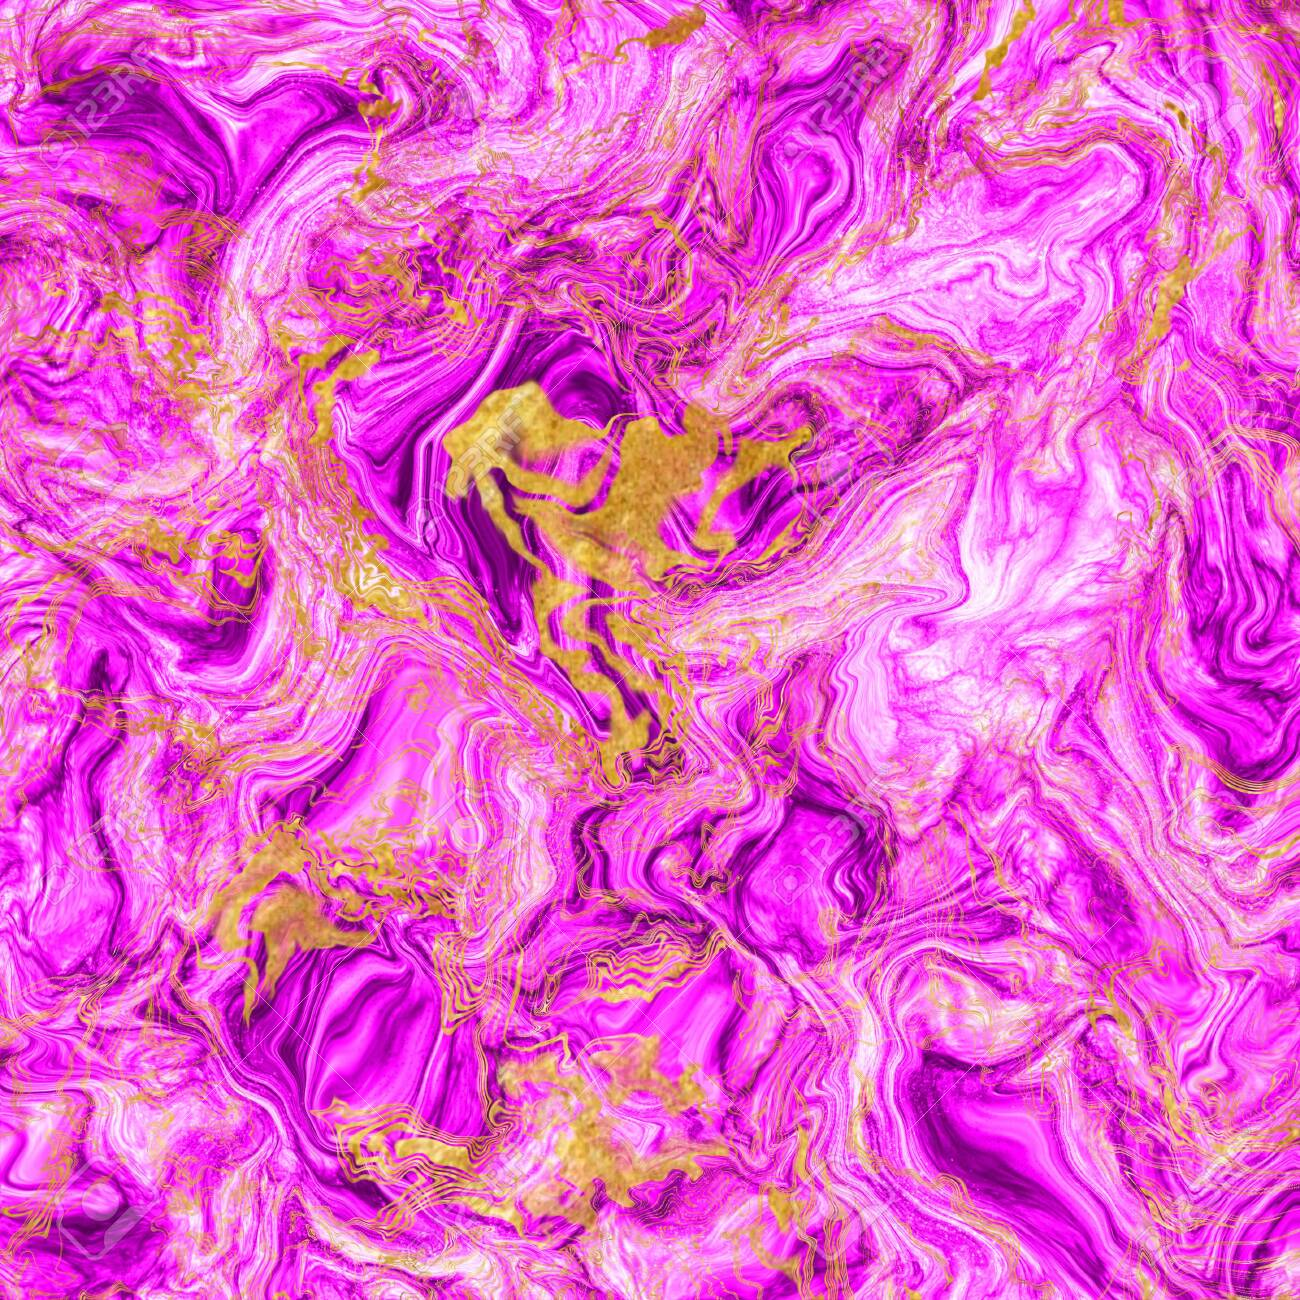 Bright Magenta And Gold Marble Swirls Modern Background Mixed Stock Photo Picture And Royalty Free Image Image 140417235